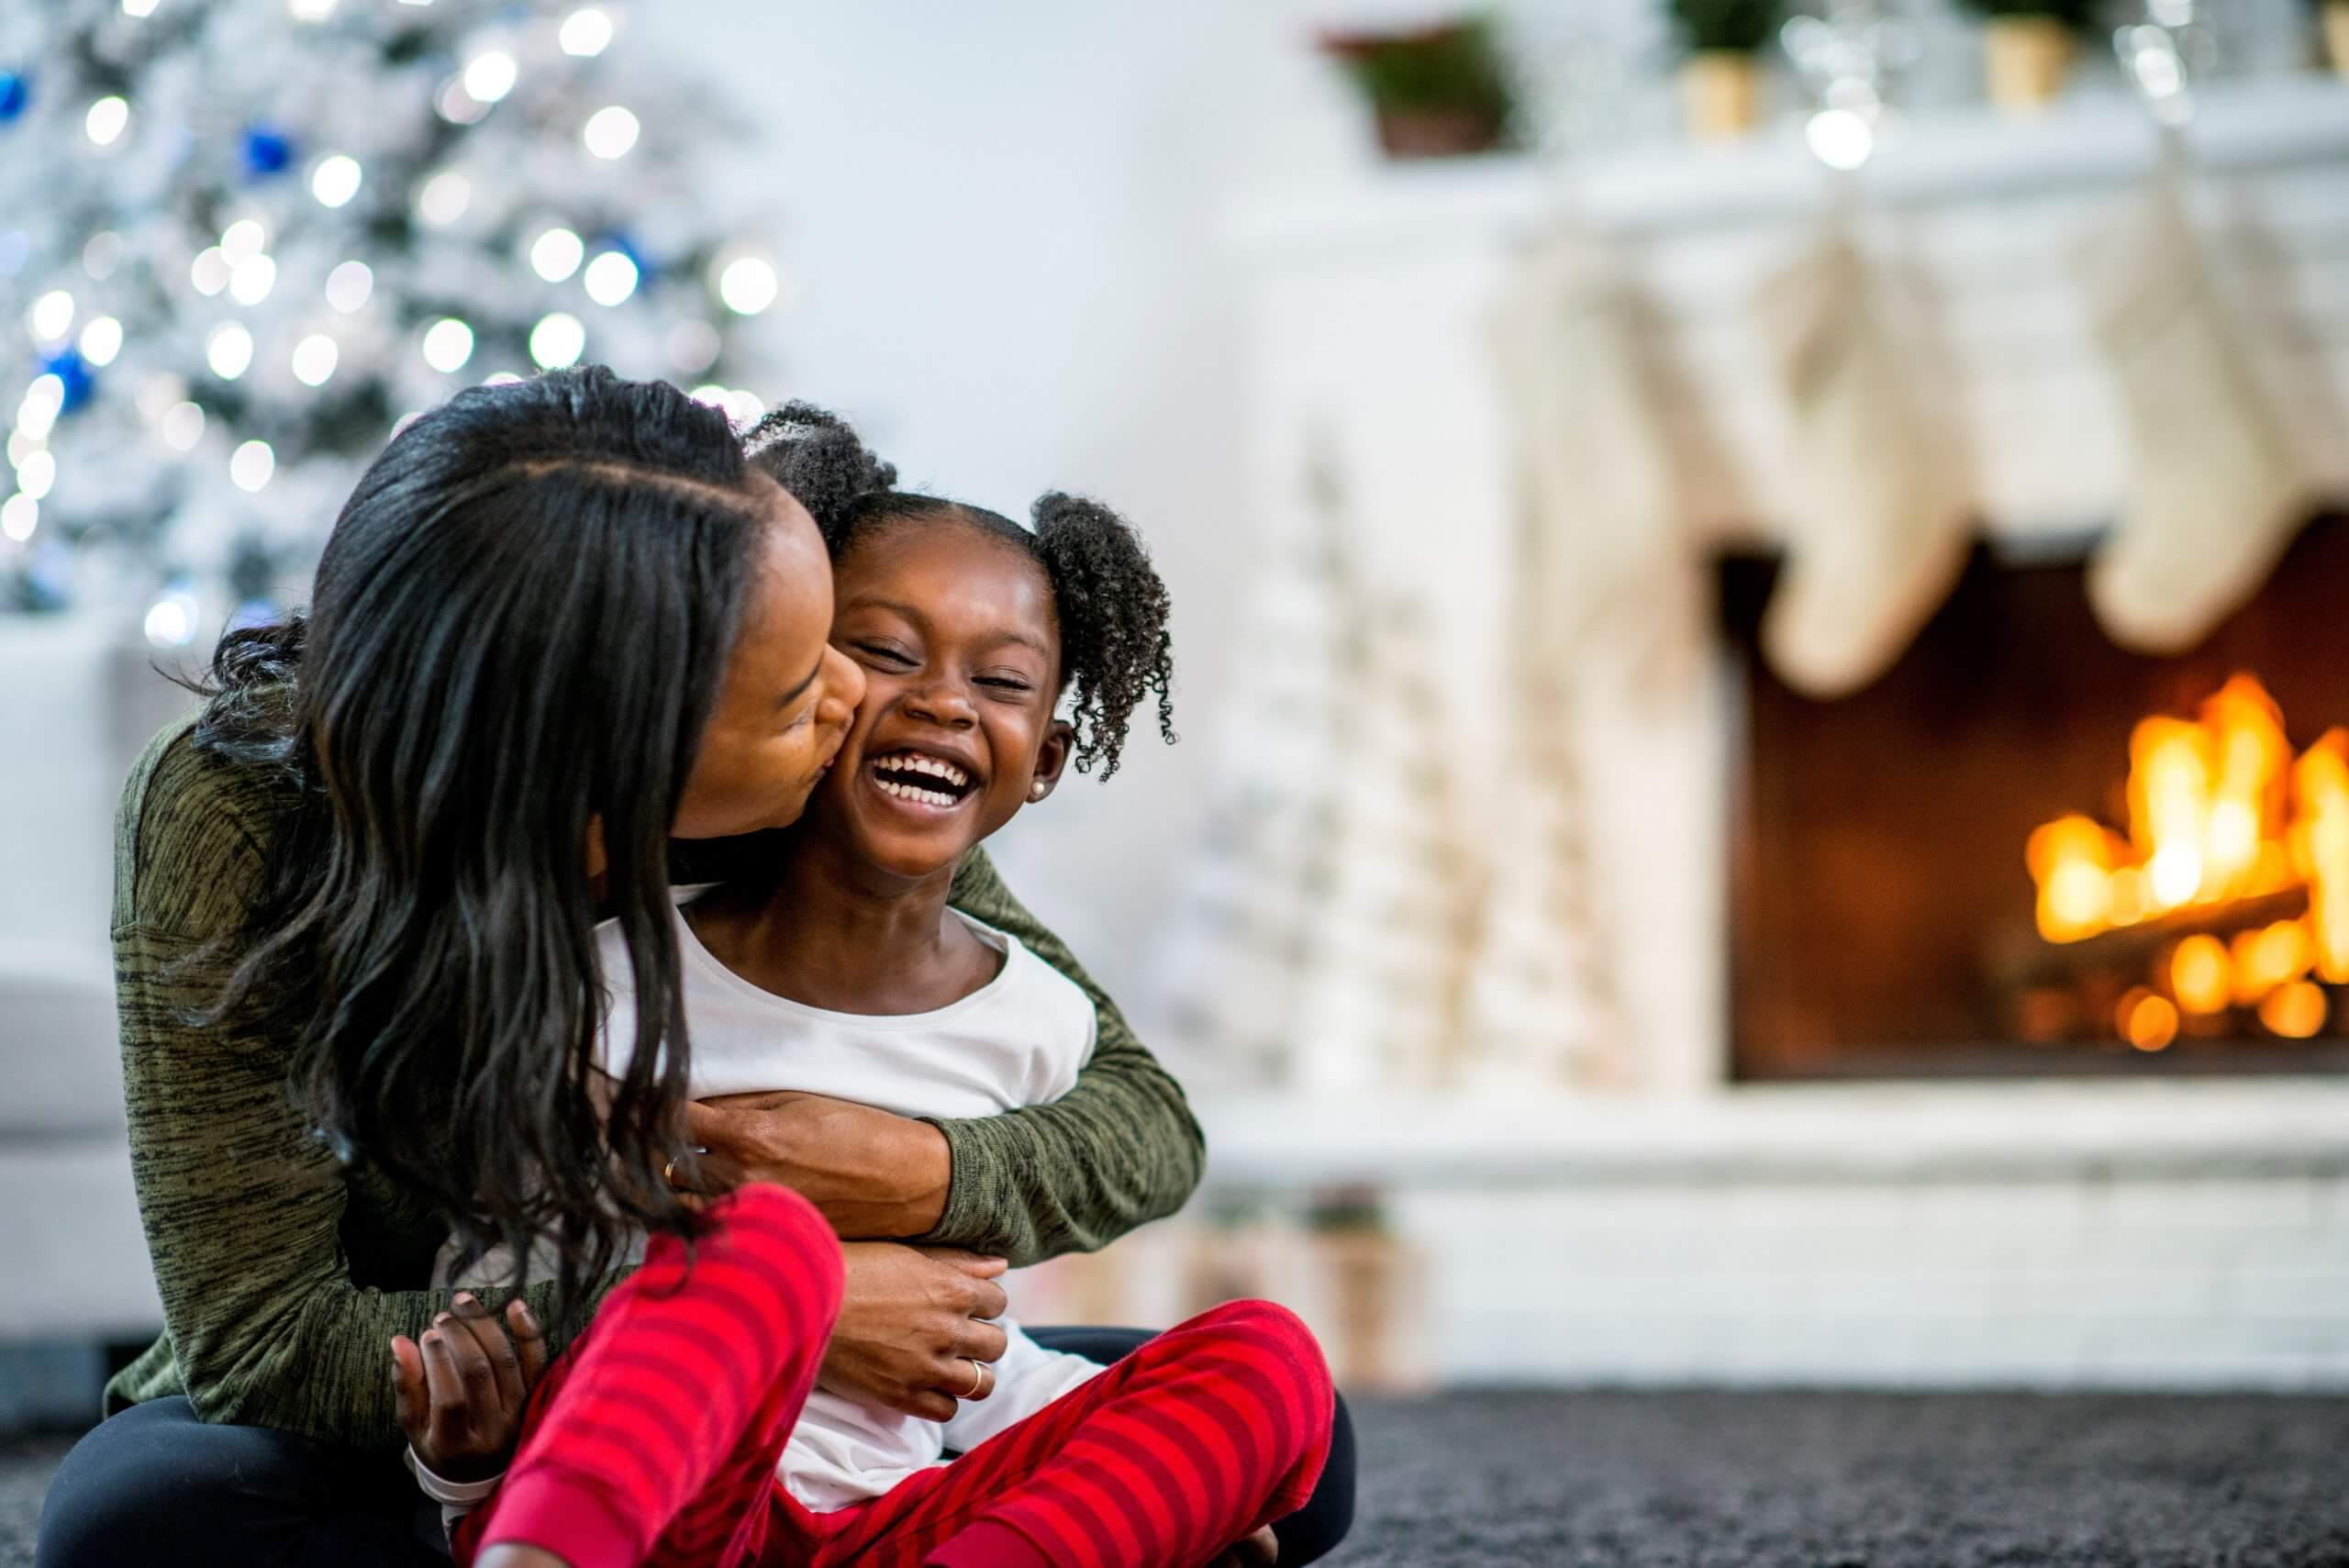 Photograph of mother and daugher hugging in front of a Christmas tree. There is a log fire with stocking hanging up in the background of the picture.